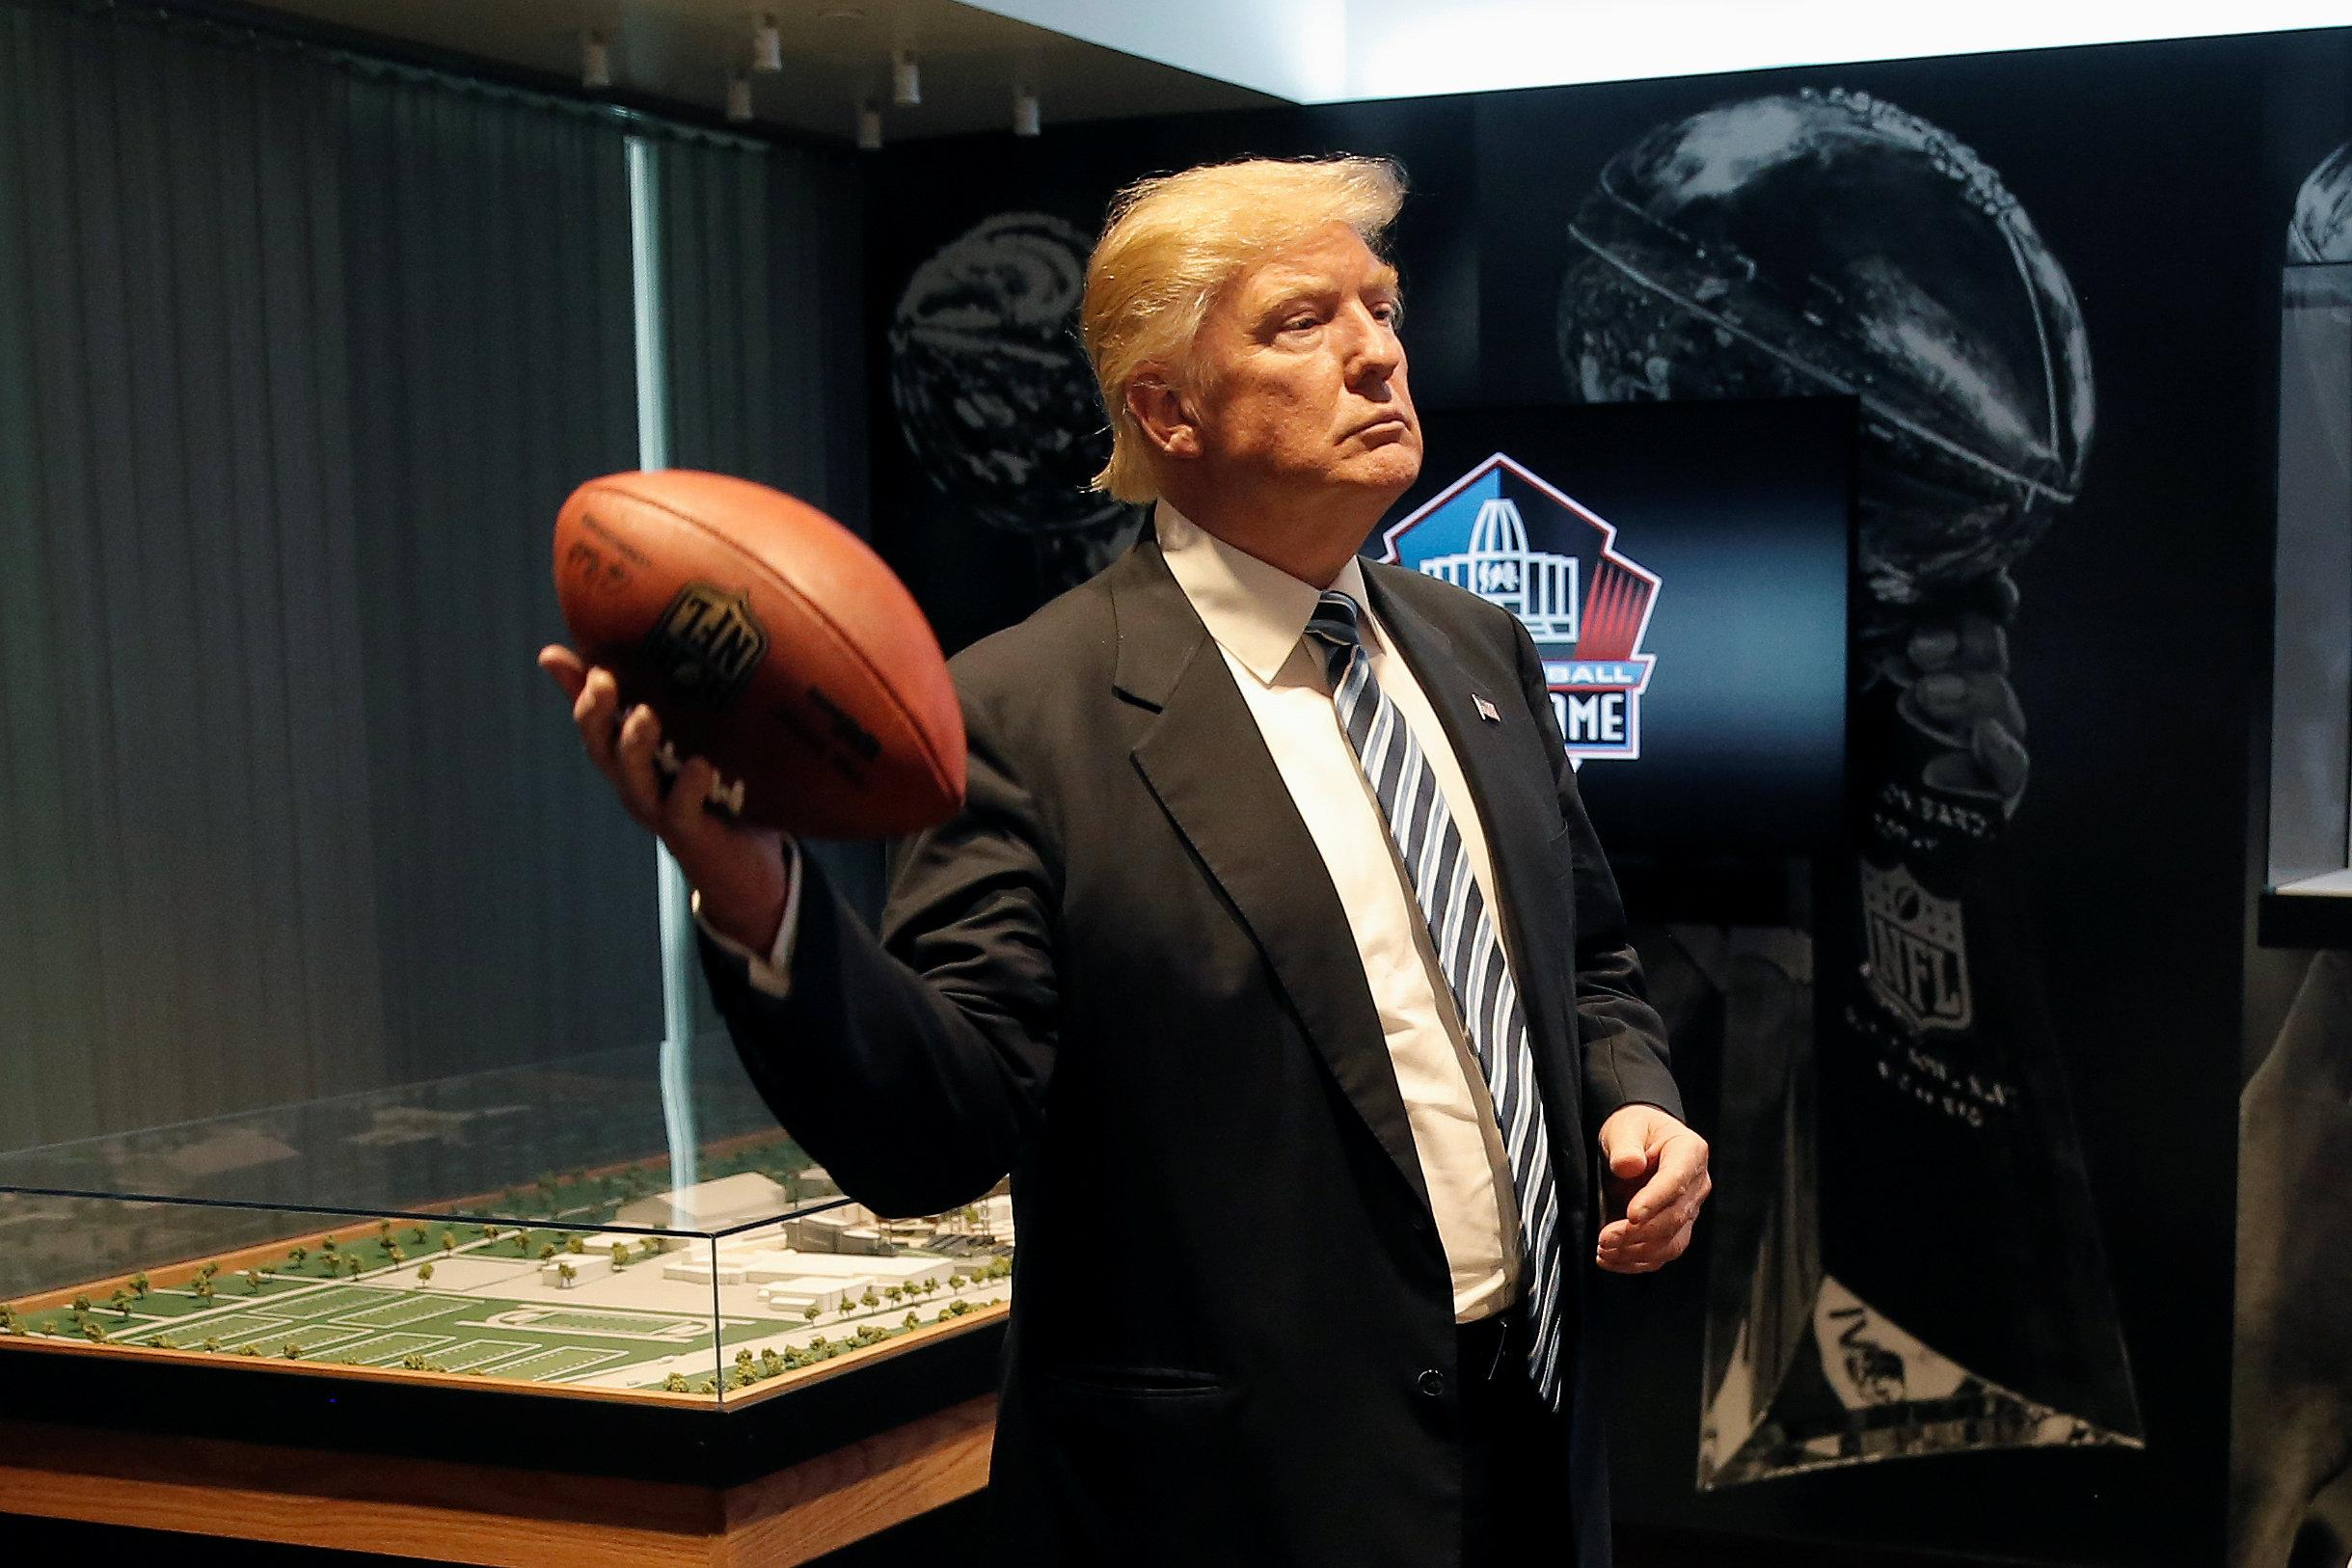 c9677cff2 Trump vs the NFL dates back to 1986